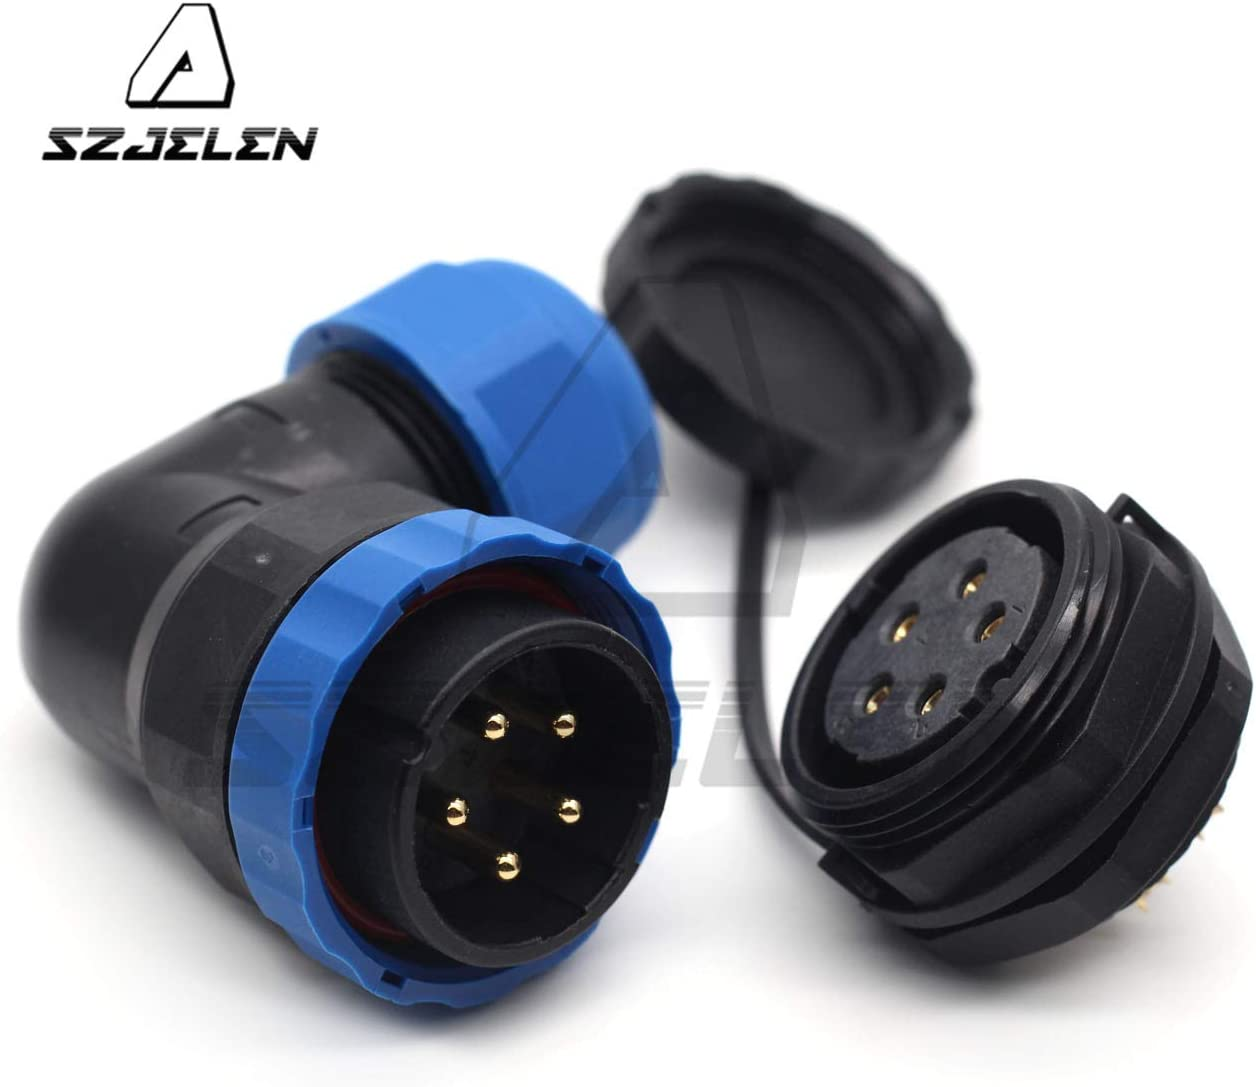 SD28 22pin waterproof connector 250V High Voltage Automotive Power Cable Plug